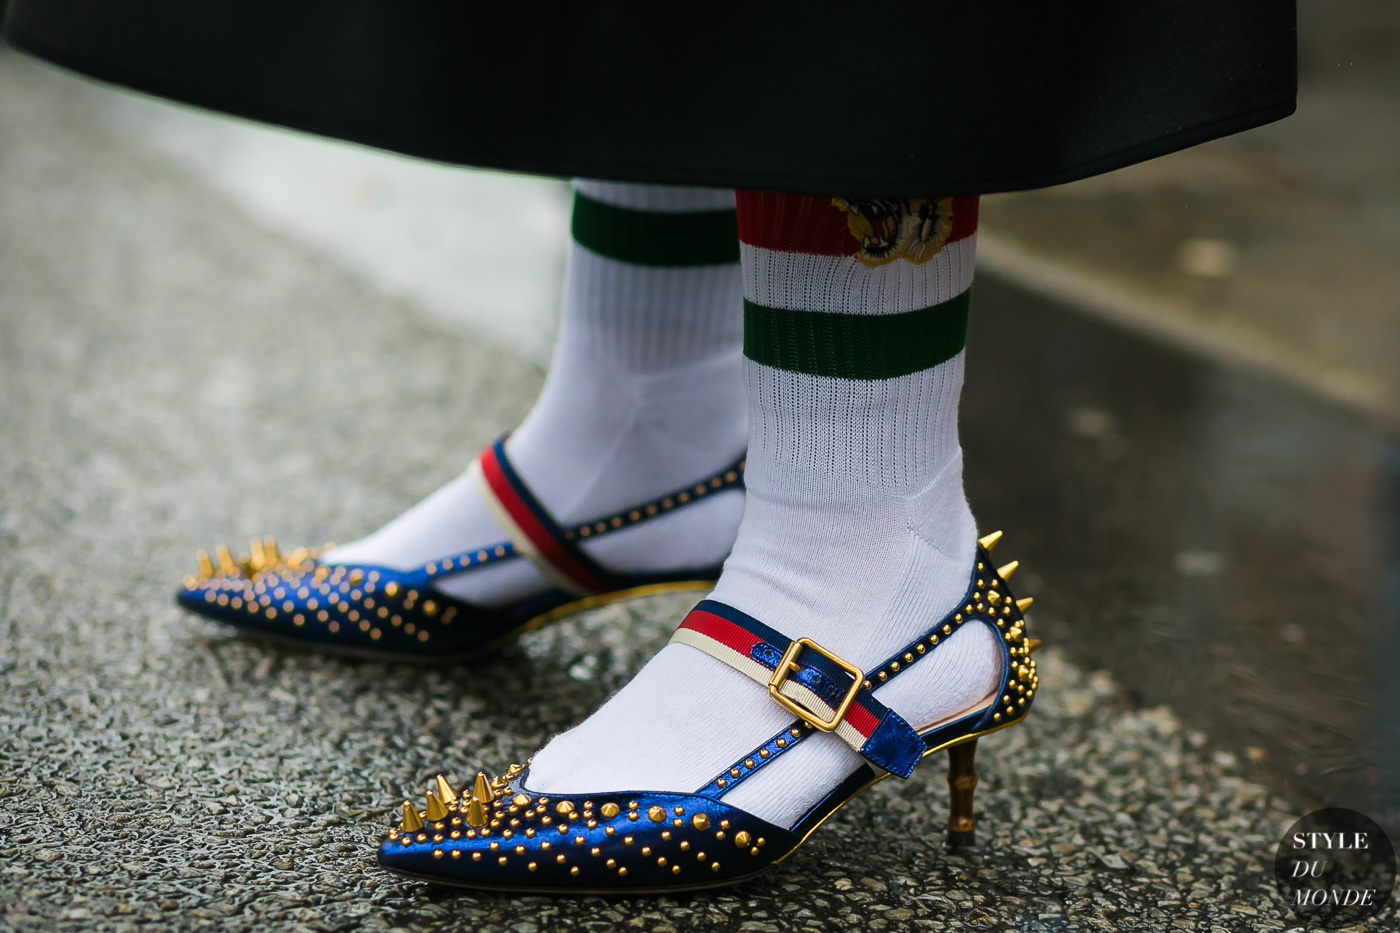 Gucci-shoes-and-socks-by-STYLEDUMONDE-St